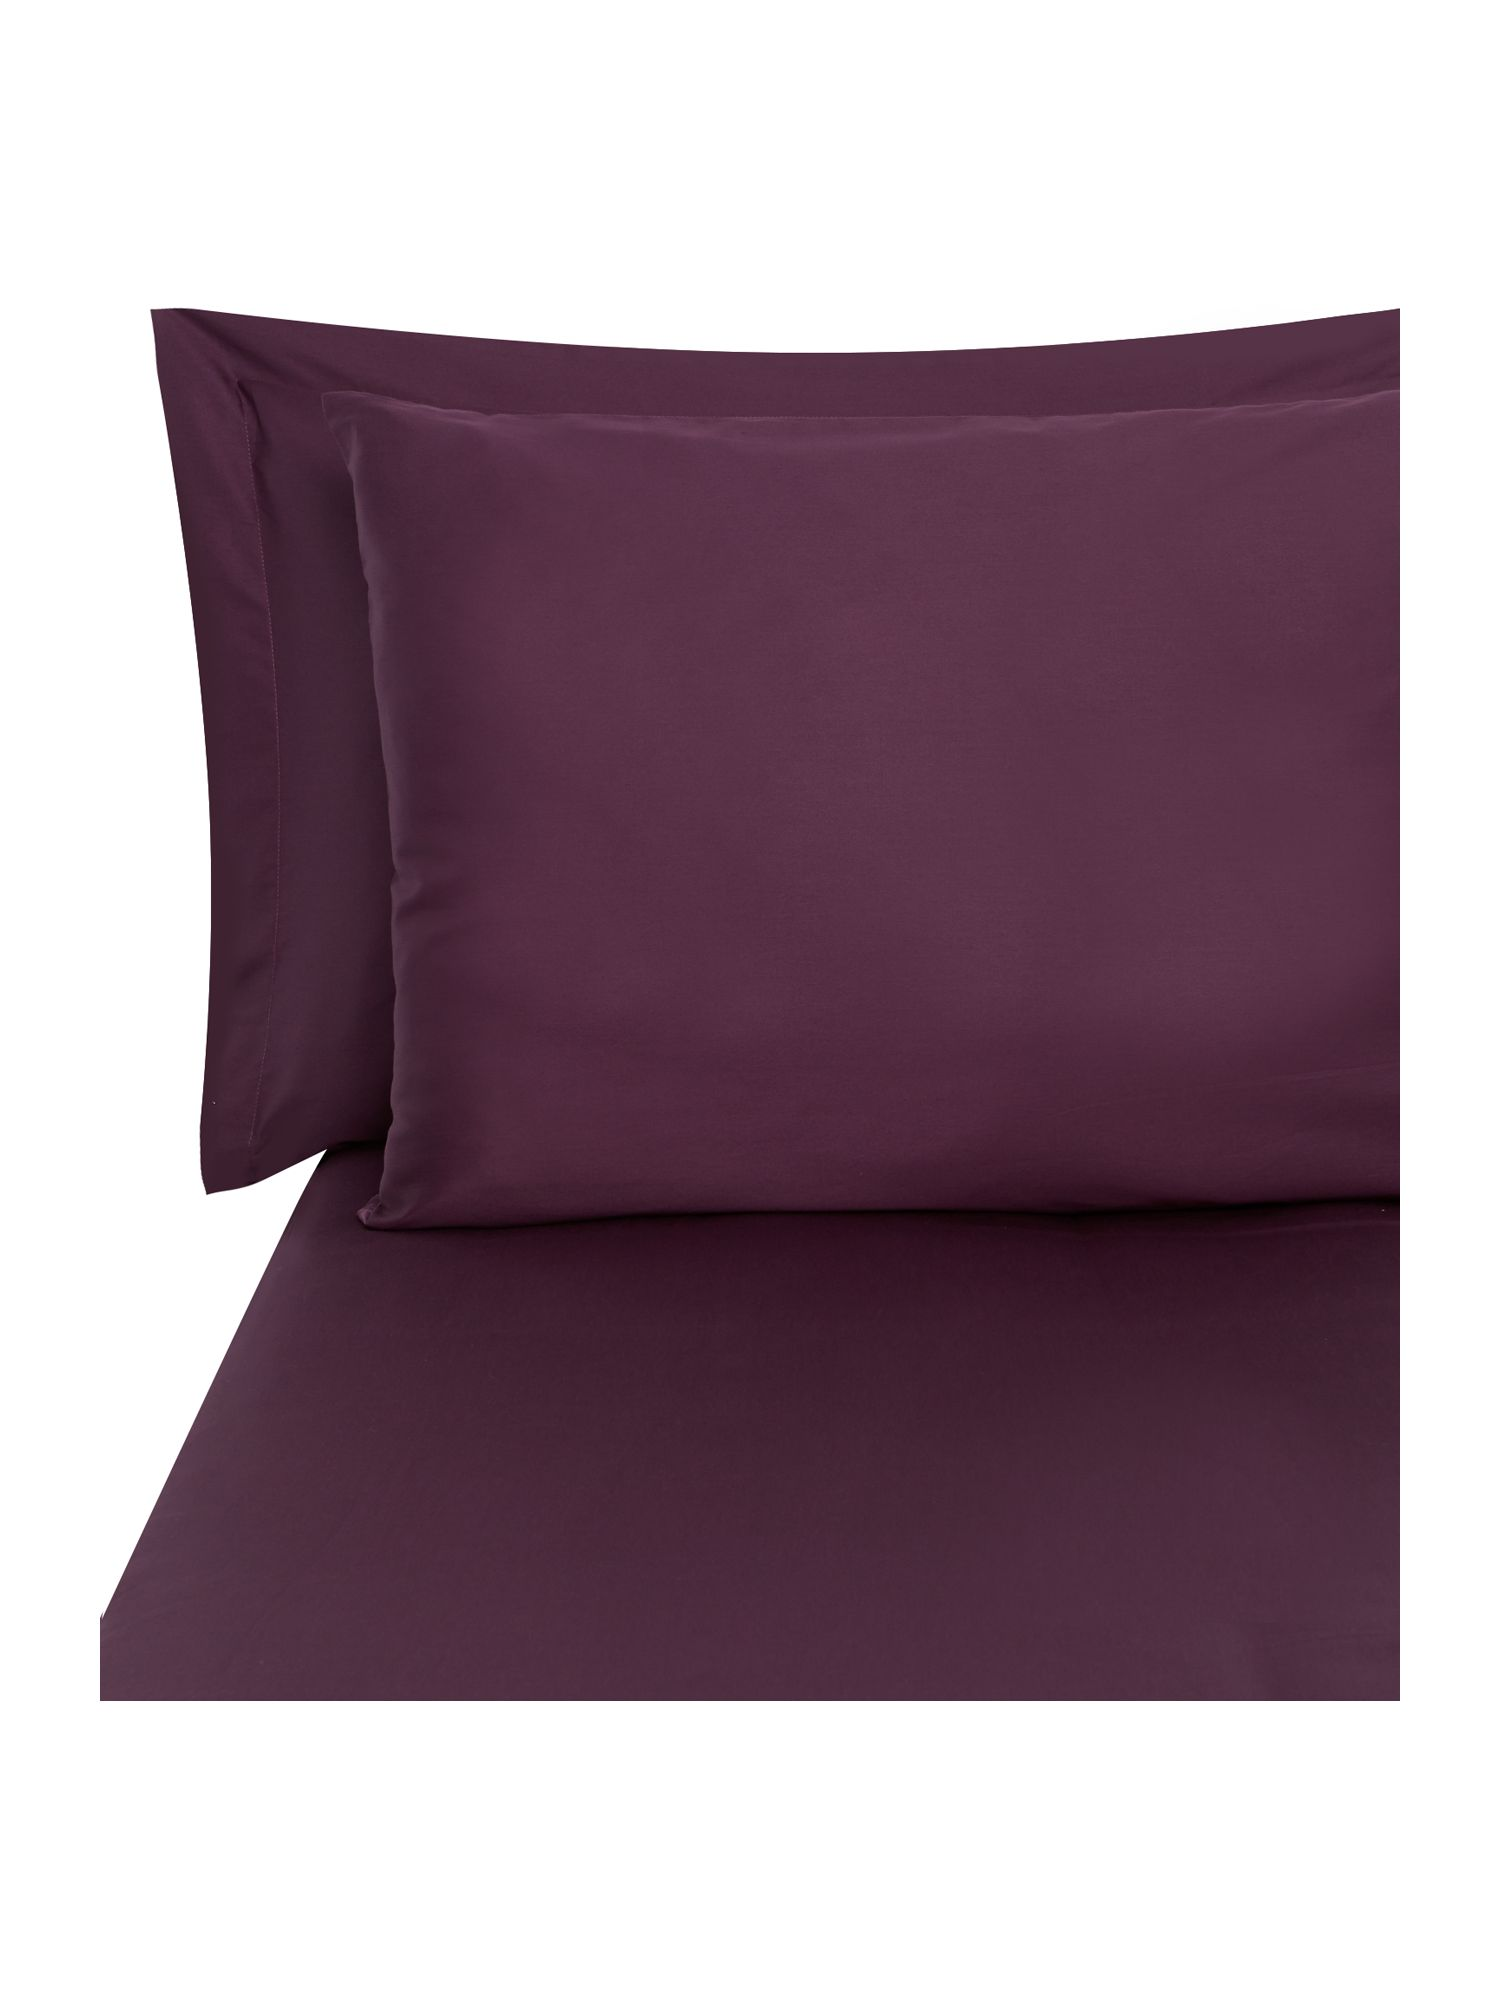 Amethyst flat sheet king